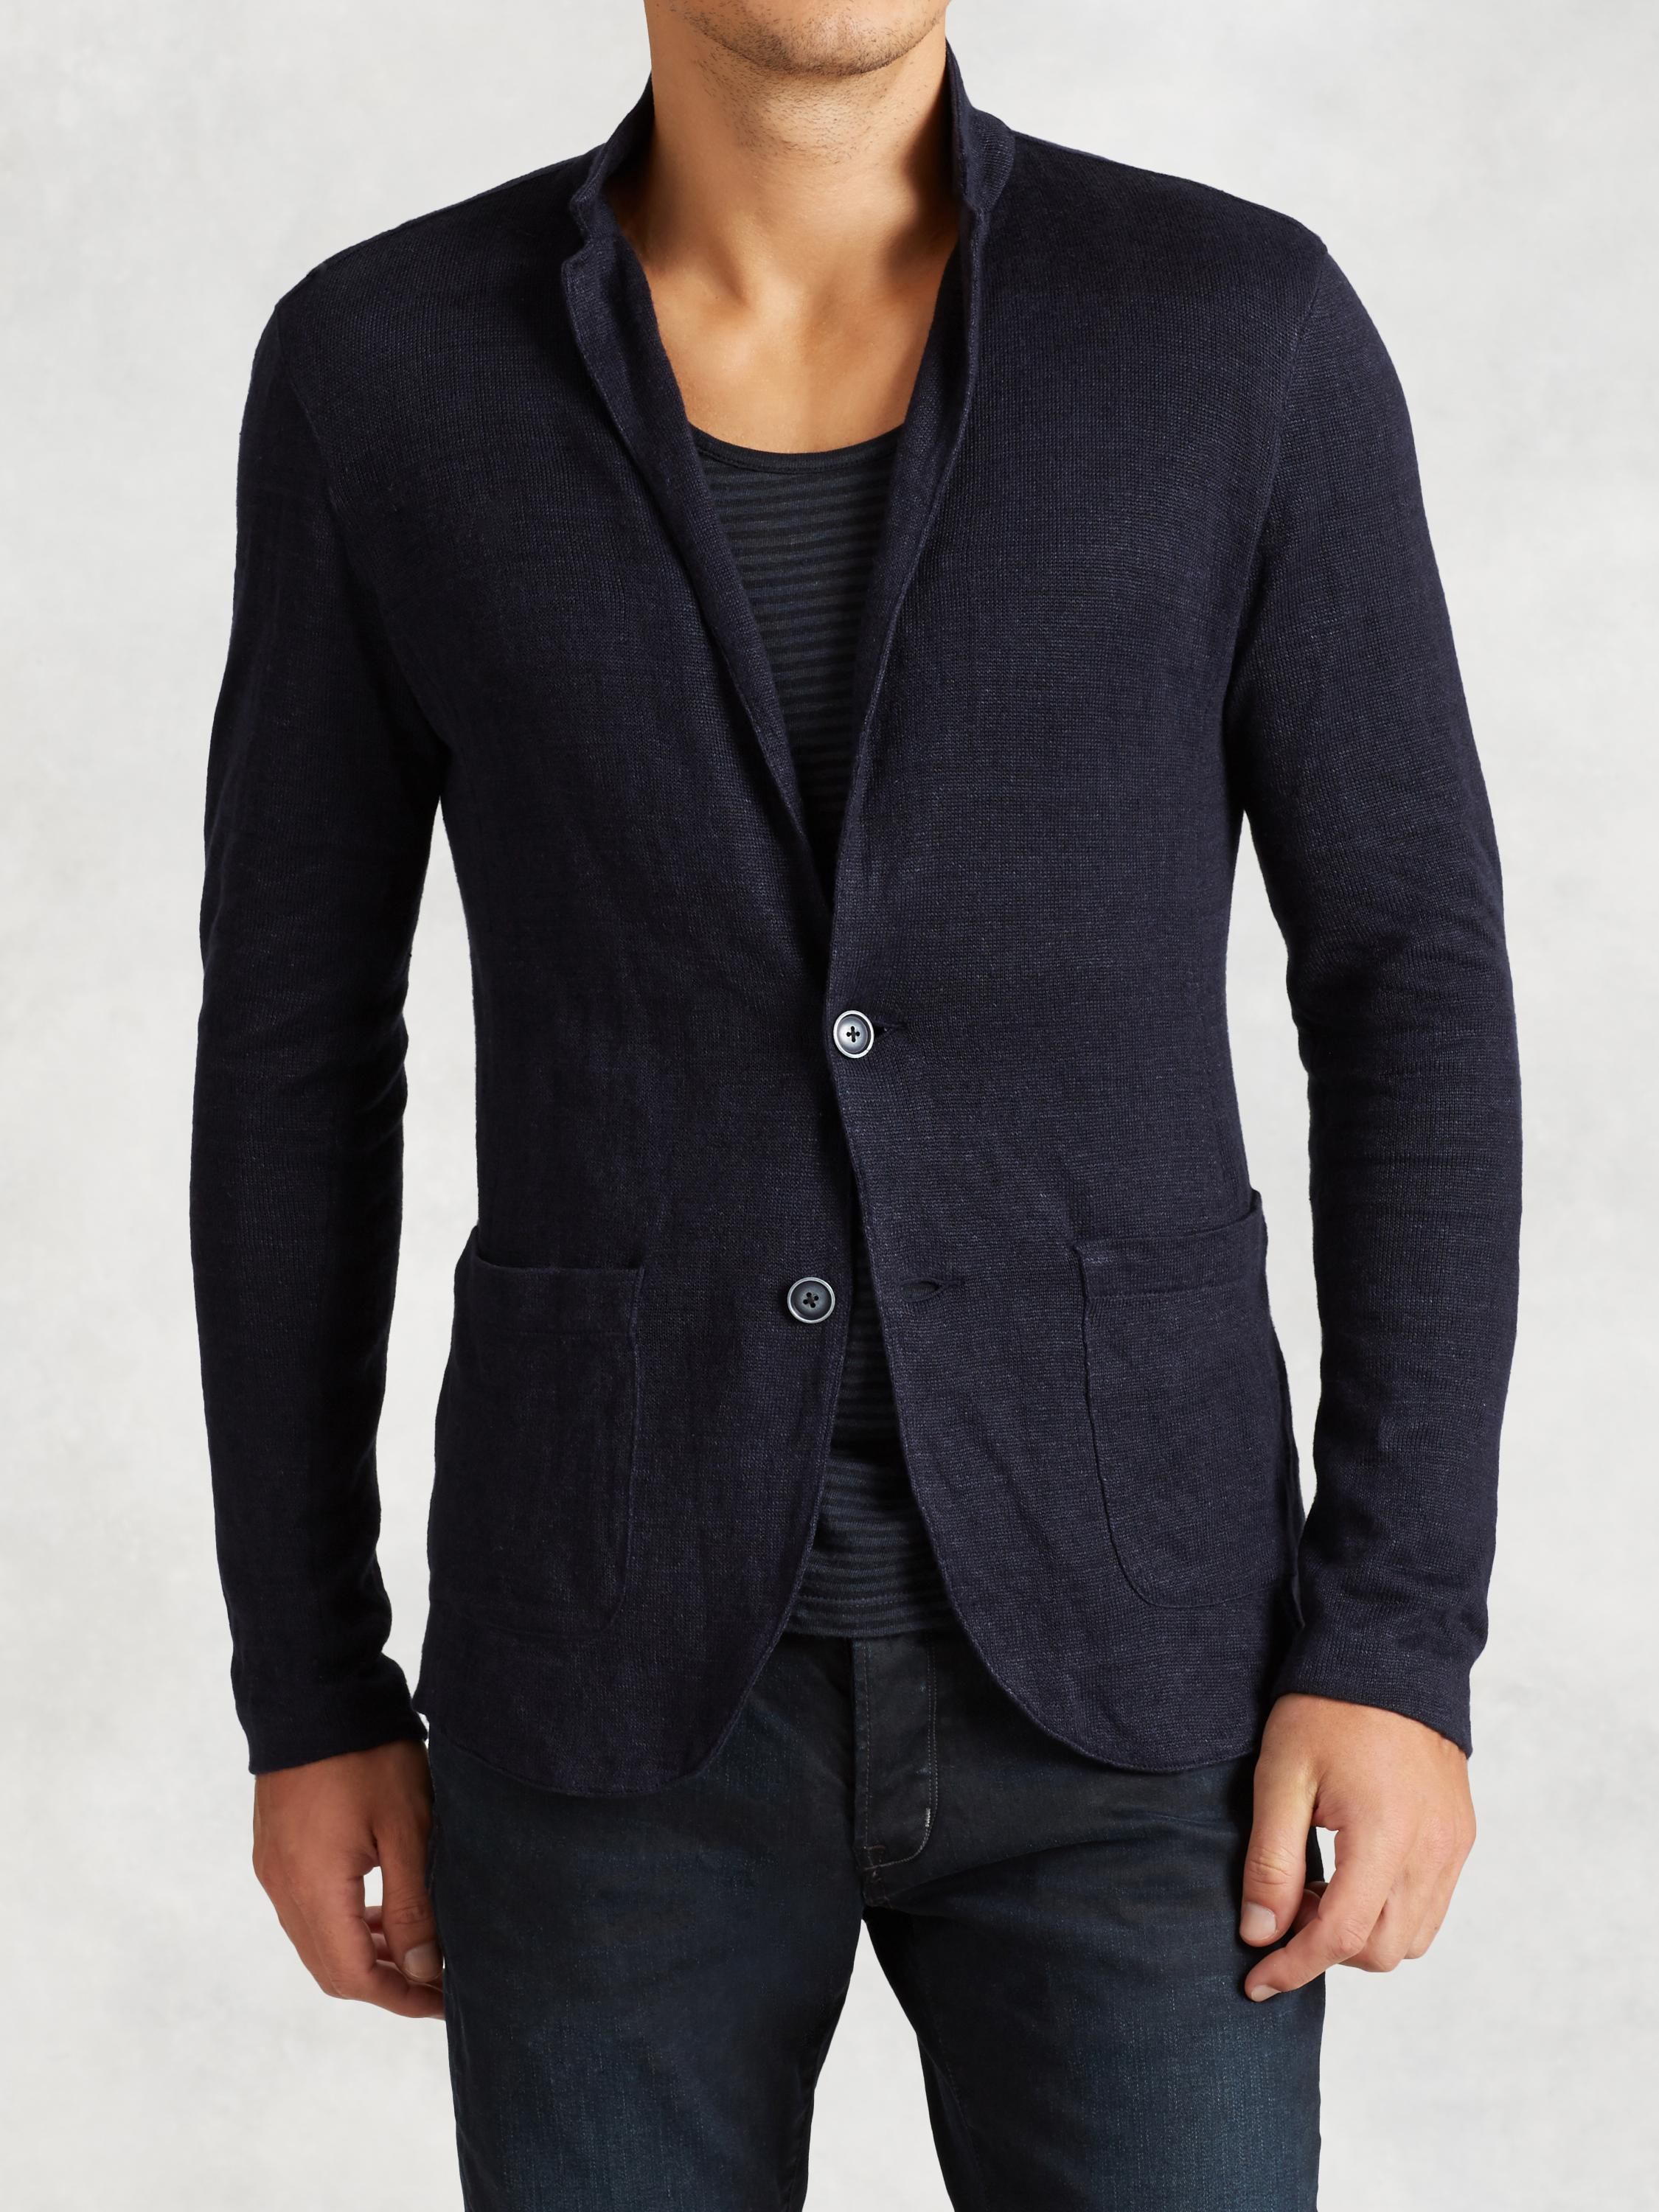 John varvatos Patch Pocket Sweater Blazer in Blue for Men | Lyst